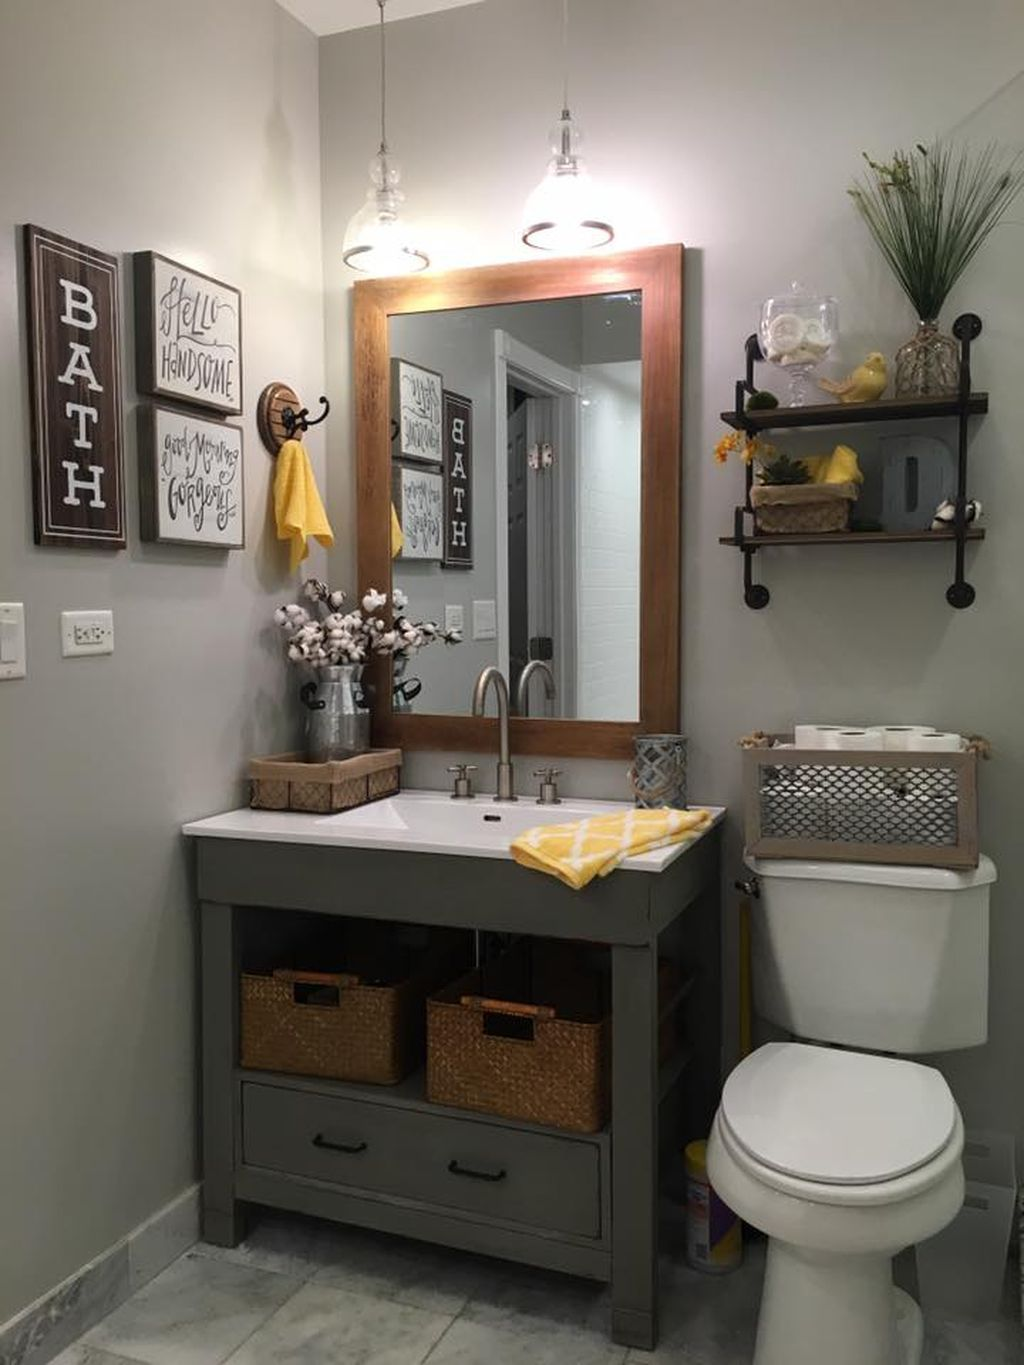 Cool 64 Cheap And Easy Diy Bathroom Vanity Makeover Ideas  Http://about Ruth.com/2017/06/07/64 Cheap And Easy Diy Bathroom Vanity  Makeover Ideas/